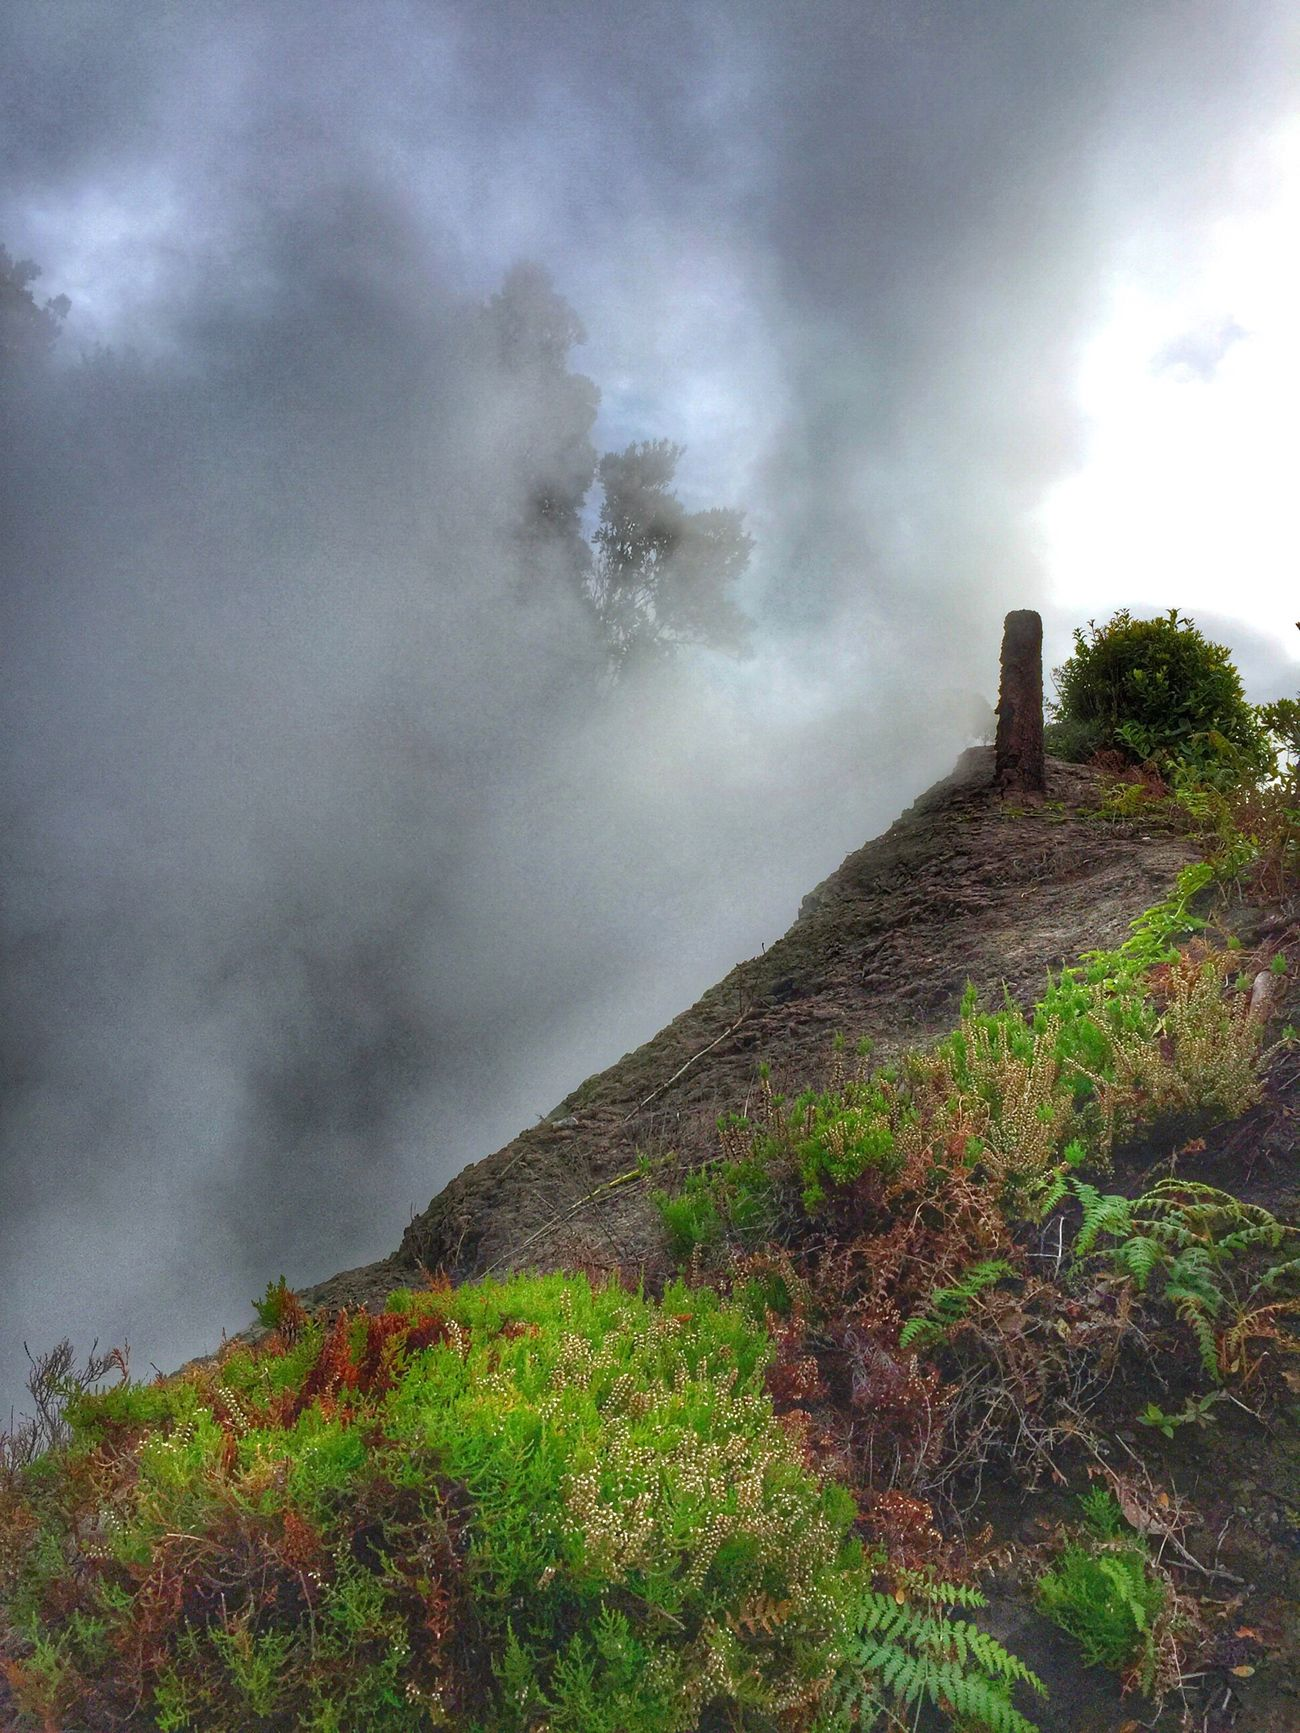 Furnas thermal hot springs. Nature Natural Beauty Hot Spring Steam Smoke - Physical Structure Low Angle View No People Tree Azores Landscape Nature_collection Plants Natural Phenomenon NaturalBeauty